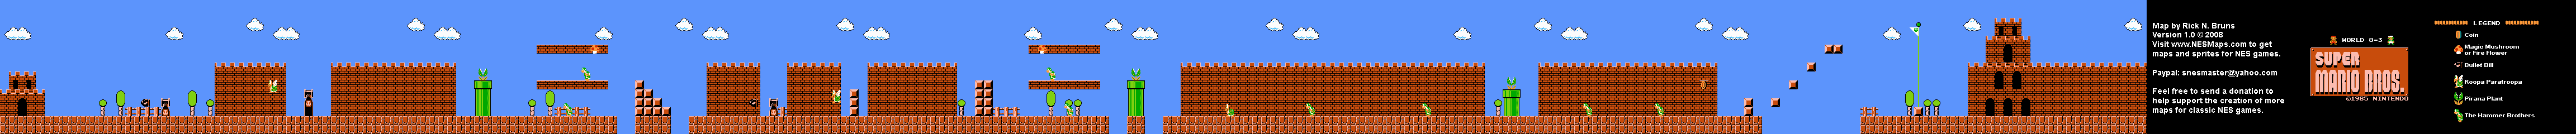 Home super mario brothers map select prev map next map